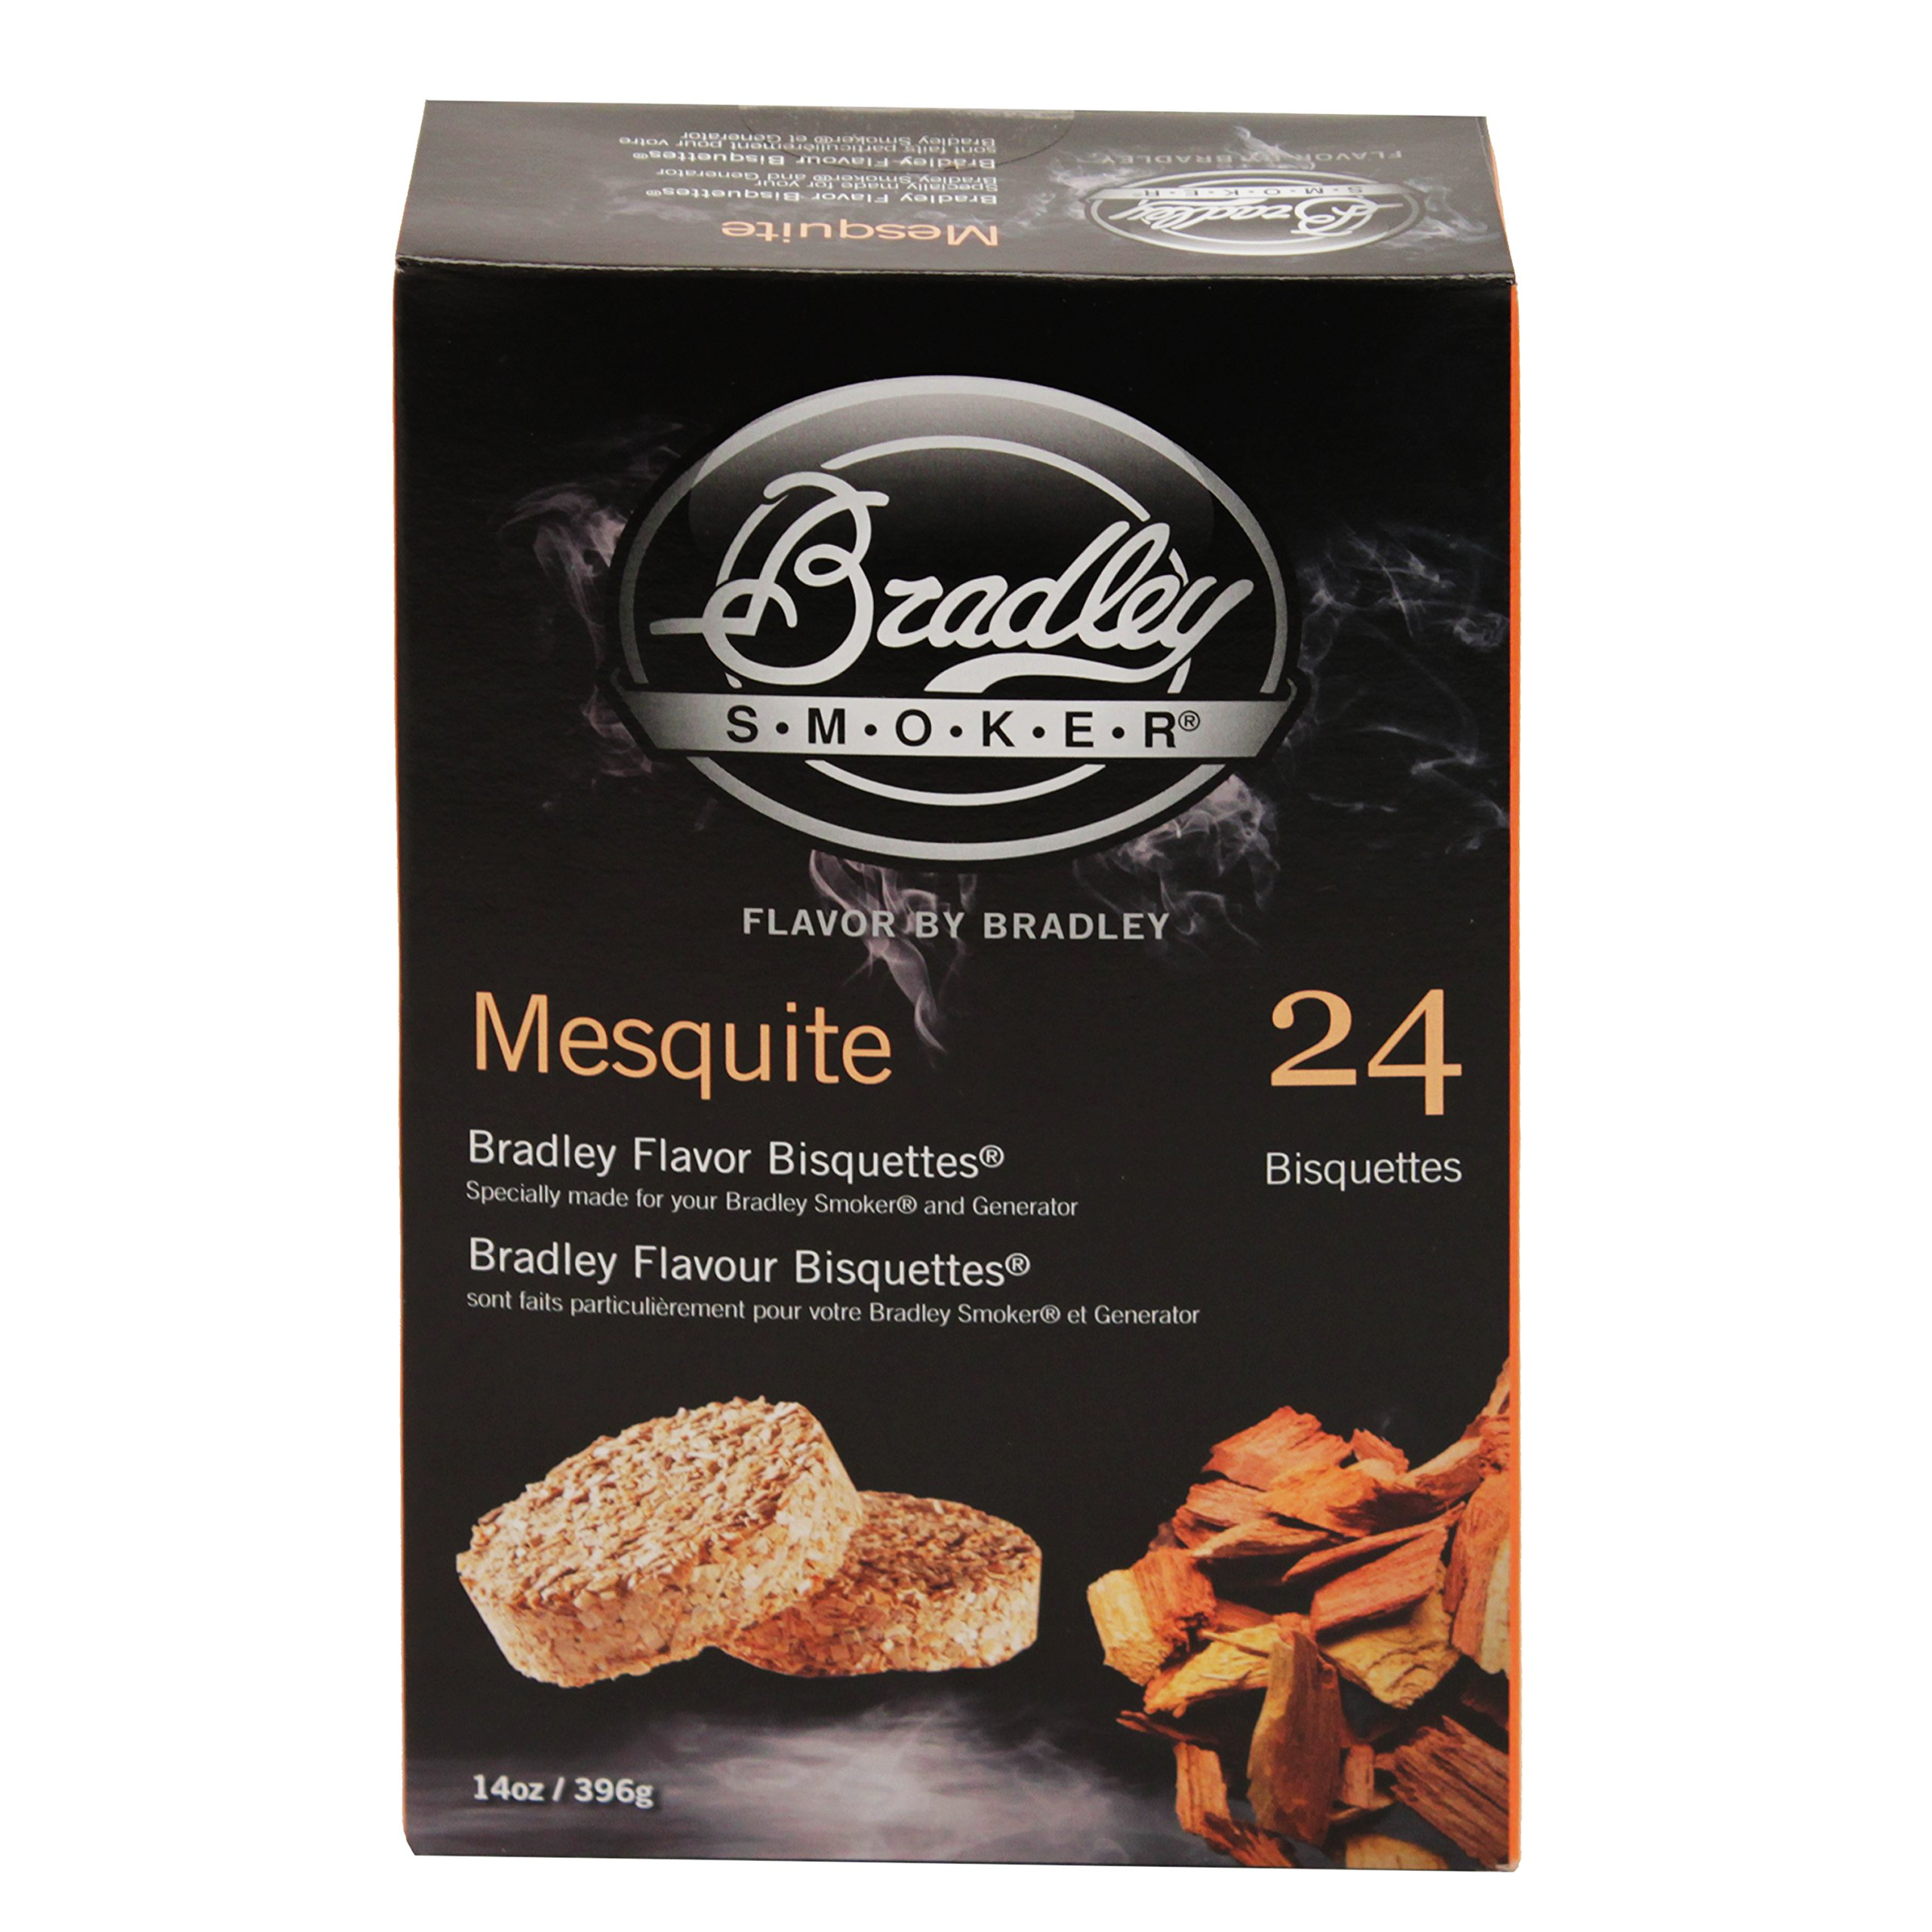 Bradley Smokers BTMQ24 Mesquite Flavored Banquettes Smokers, 24-Pack by Bradley Smoker